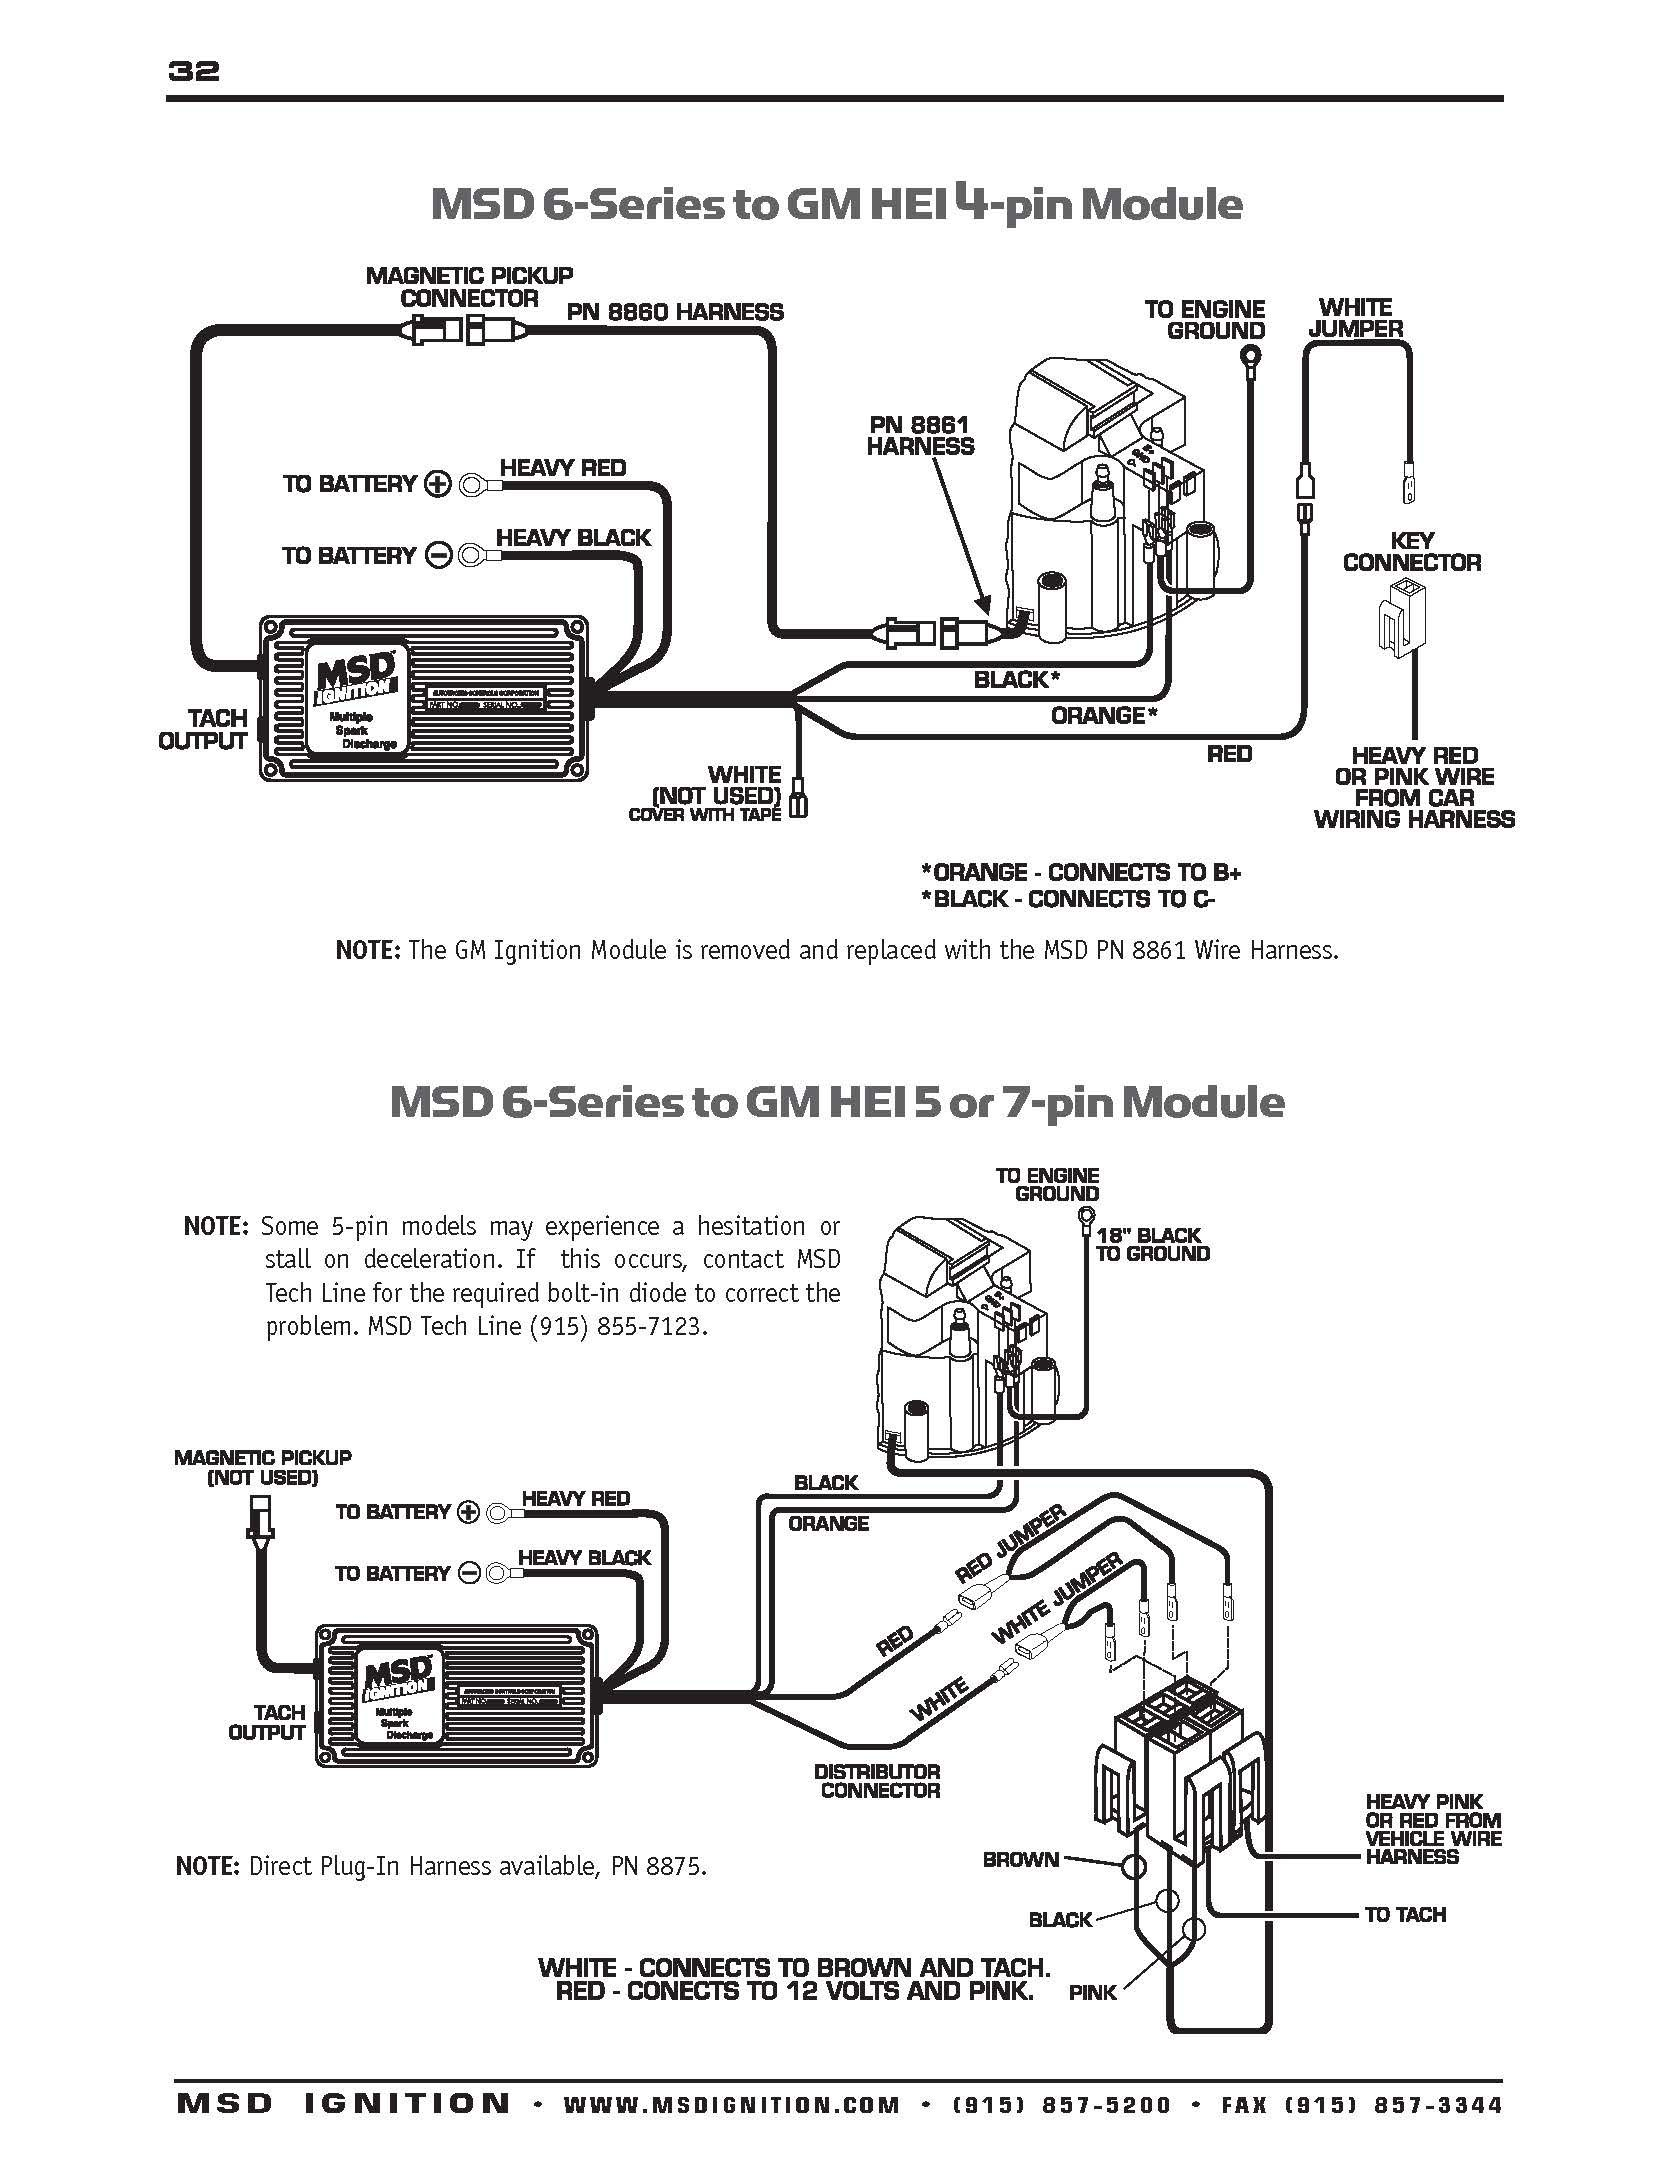 msd ignition wiring diagrams 1966 chevelle diagram automotive 66 chevelle ignition switch wiring diagram 1966 chevelle ignition wiring diagram [ 1675 x 2175 Pixel ]